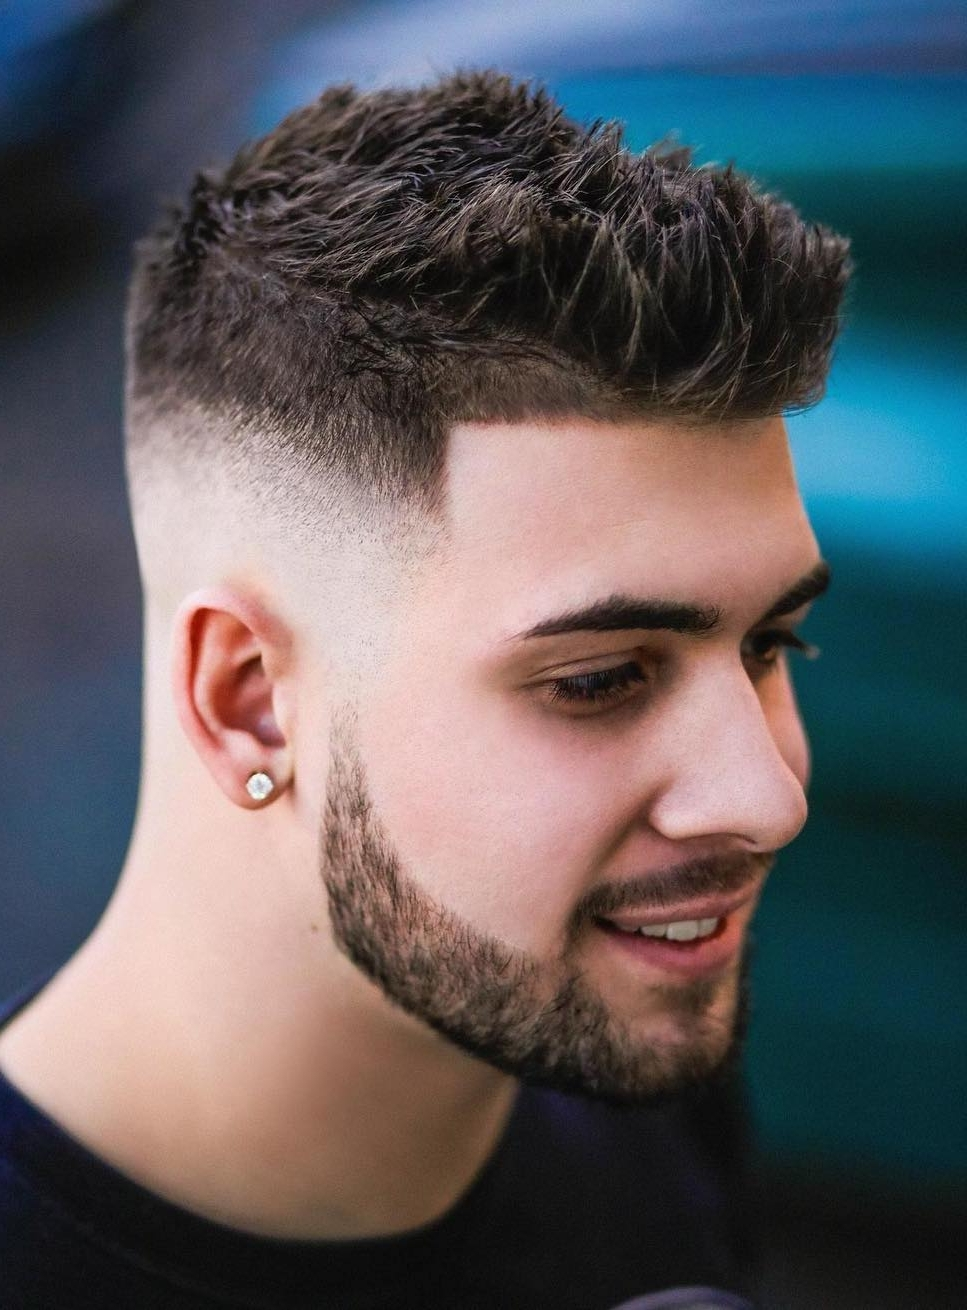 20 The Most Fashionable Mid Fade Haircuts For Men 40+ Adorable Medium Fade Short Hairstyle For Men